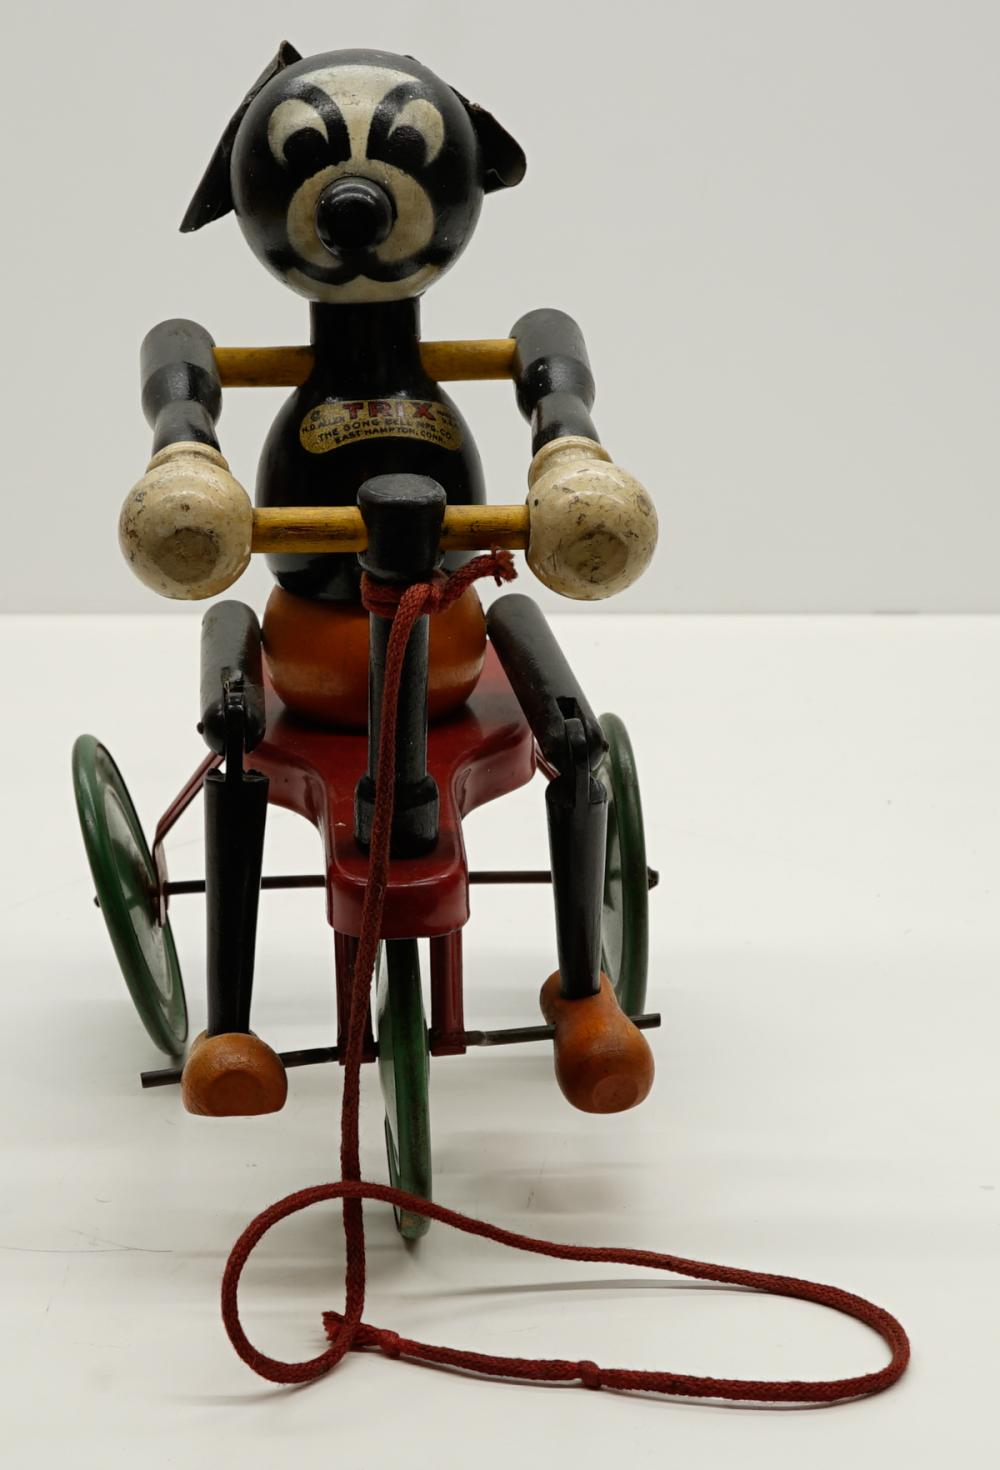 Lot 19: Gong Bell Pedal Trix #69 Toy Tricycle